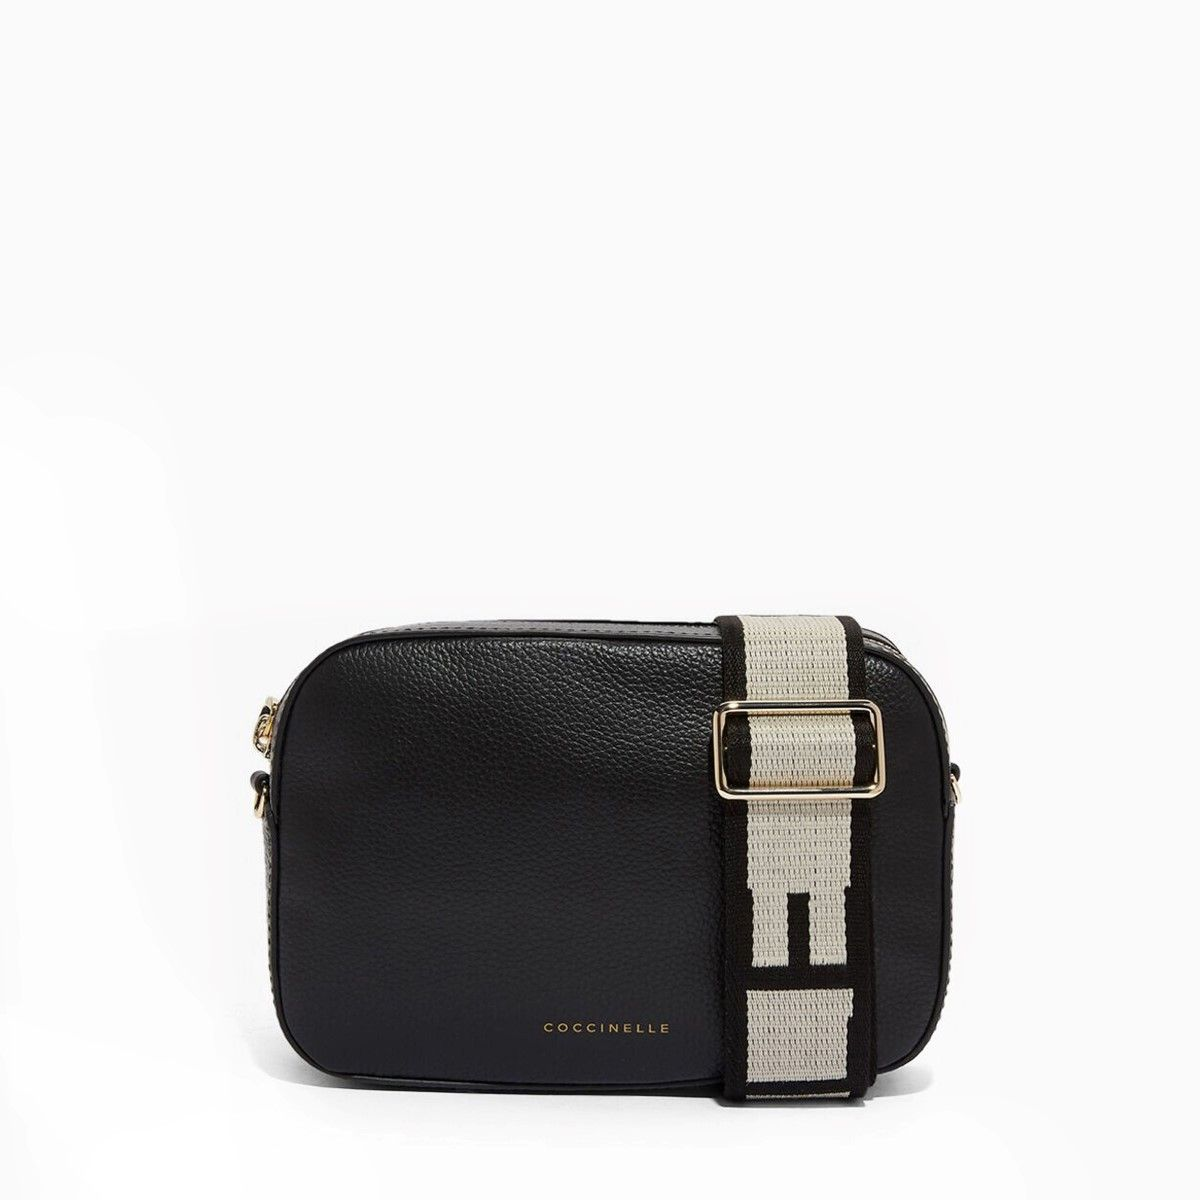 Tebe Crossbody Bag in Tumbled Leather Coccinelle NOIR